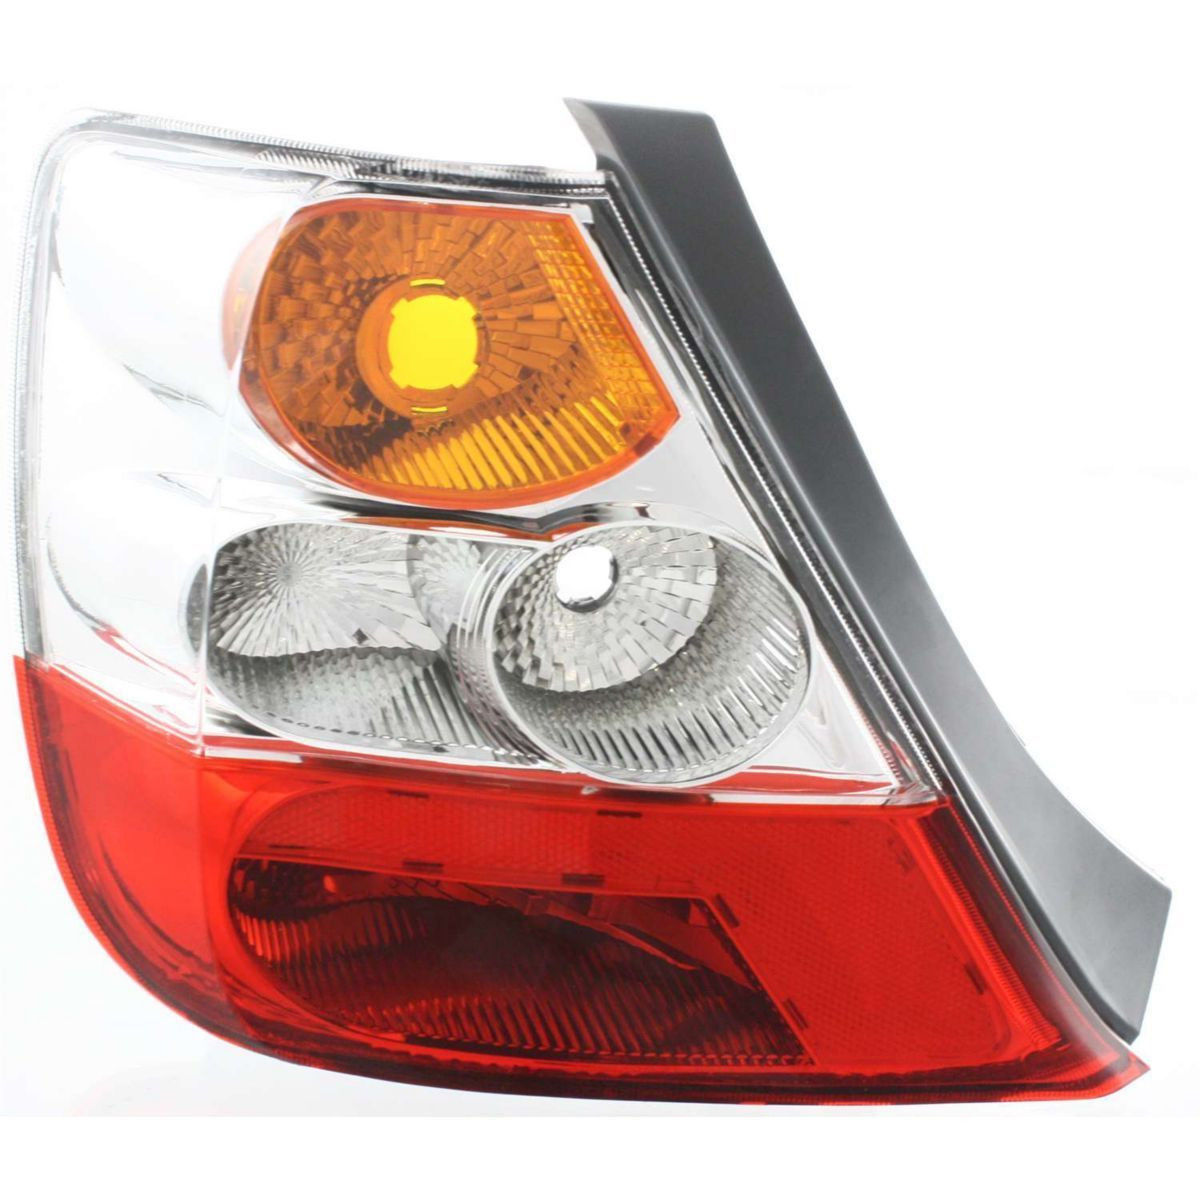 <b>Tail Light Assembly Driver Side Fits 2004-2005 Honda Civic Hatchback HO2800156 33551S5TA31 </b>